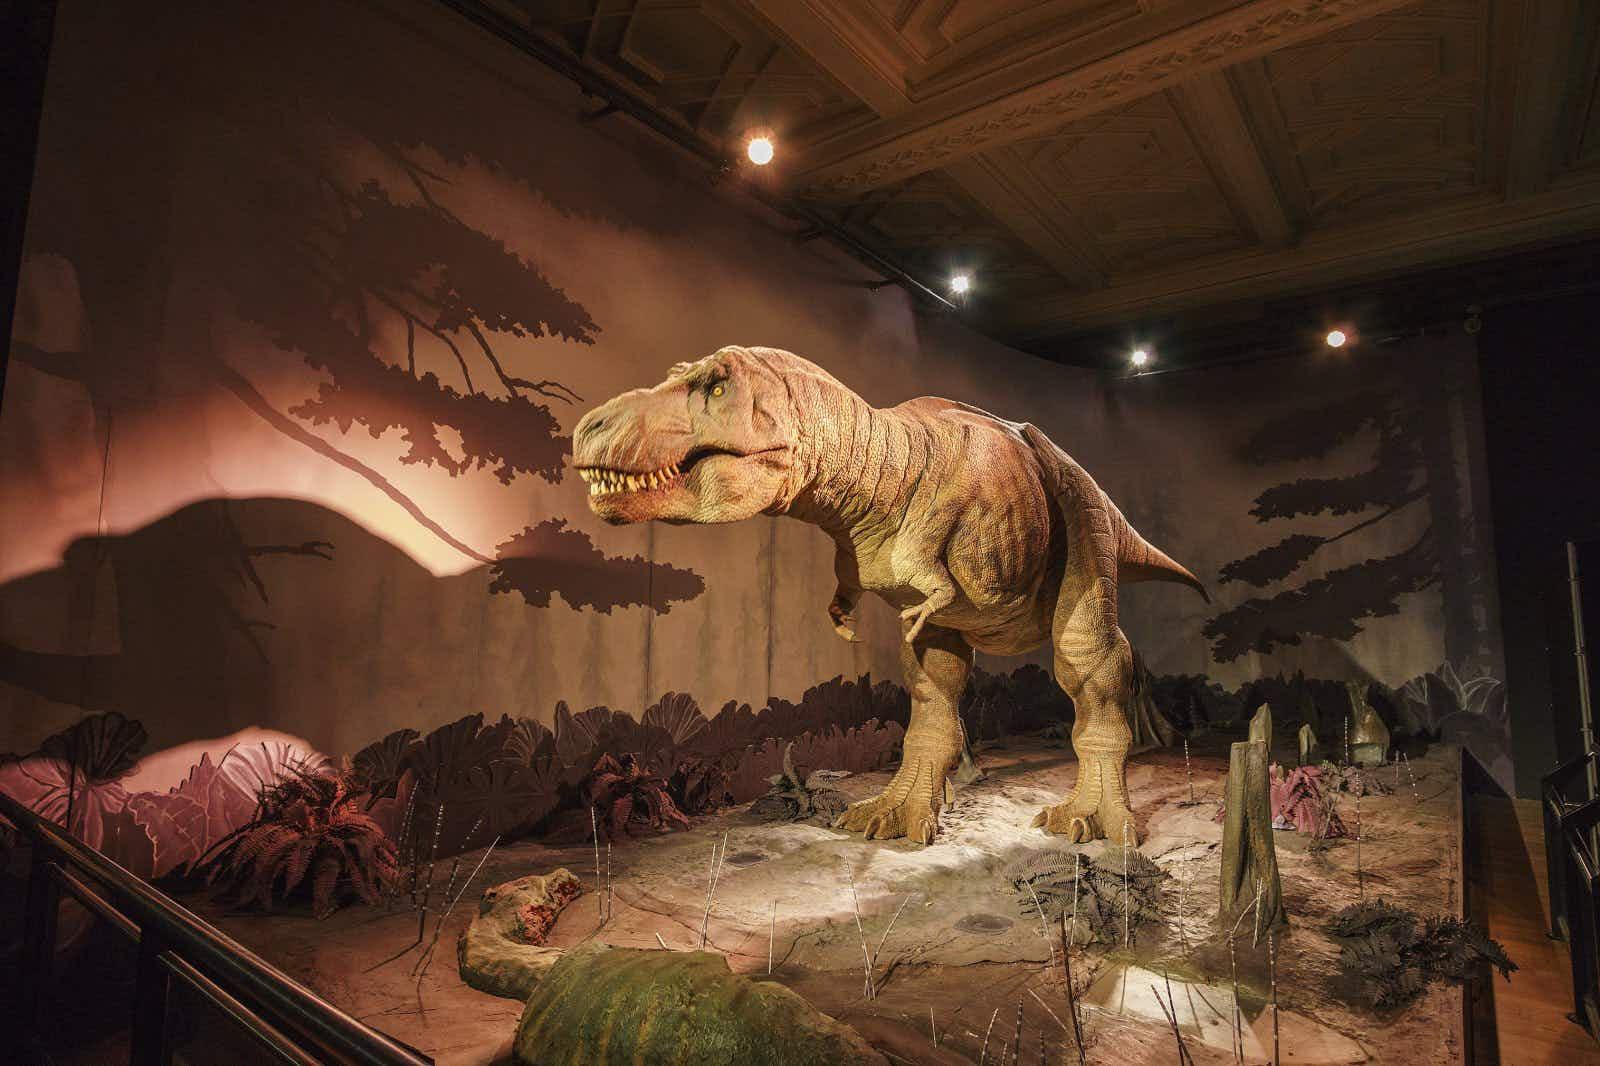 A large T-Rex stands in an empty gallery with light effects creating a sense of being in a prehistoric world